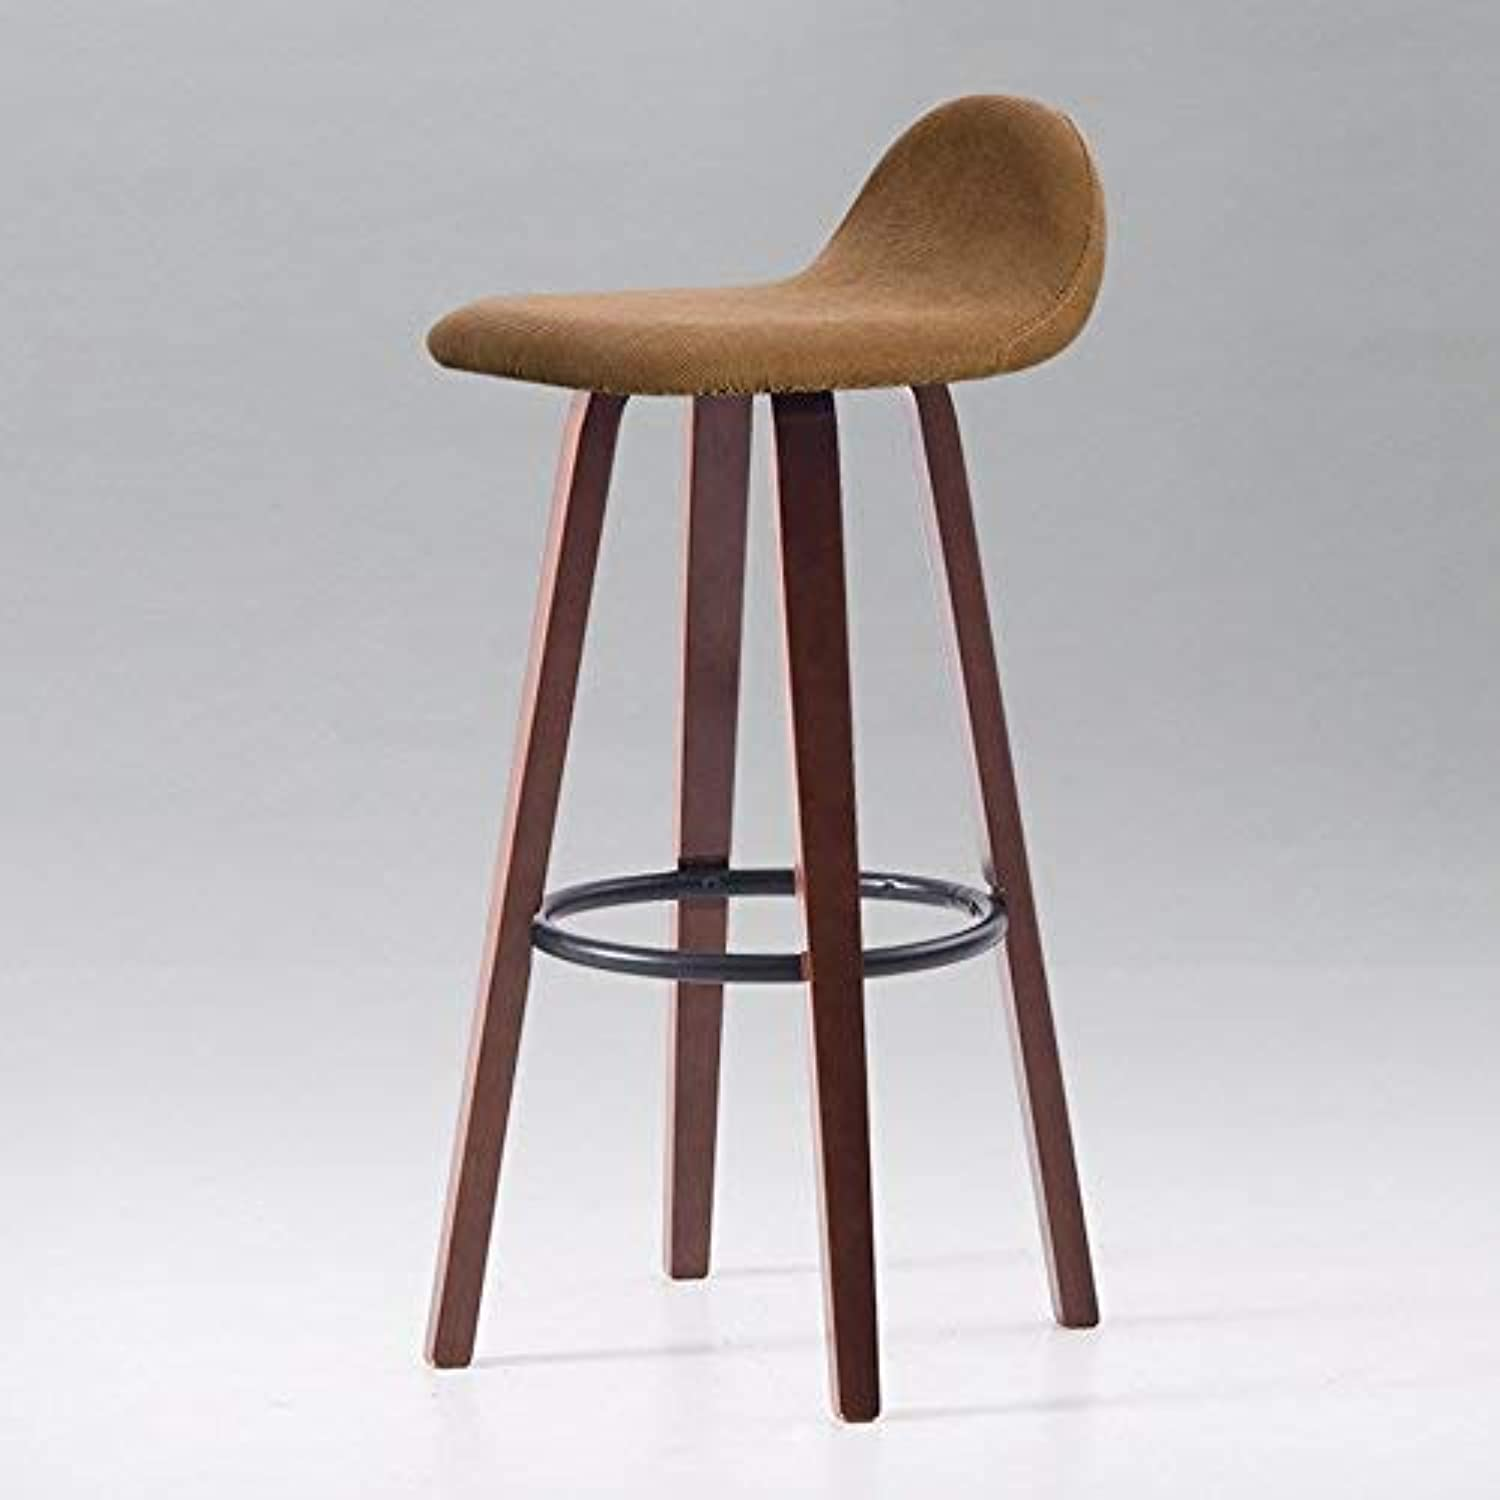 SED Chair Solid Wood High Stool Bar Chair Round Stool Retro Solid ...